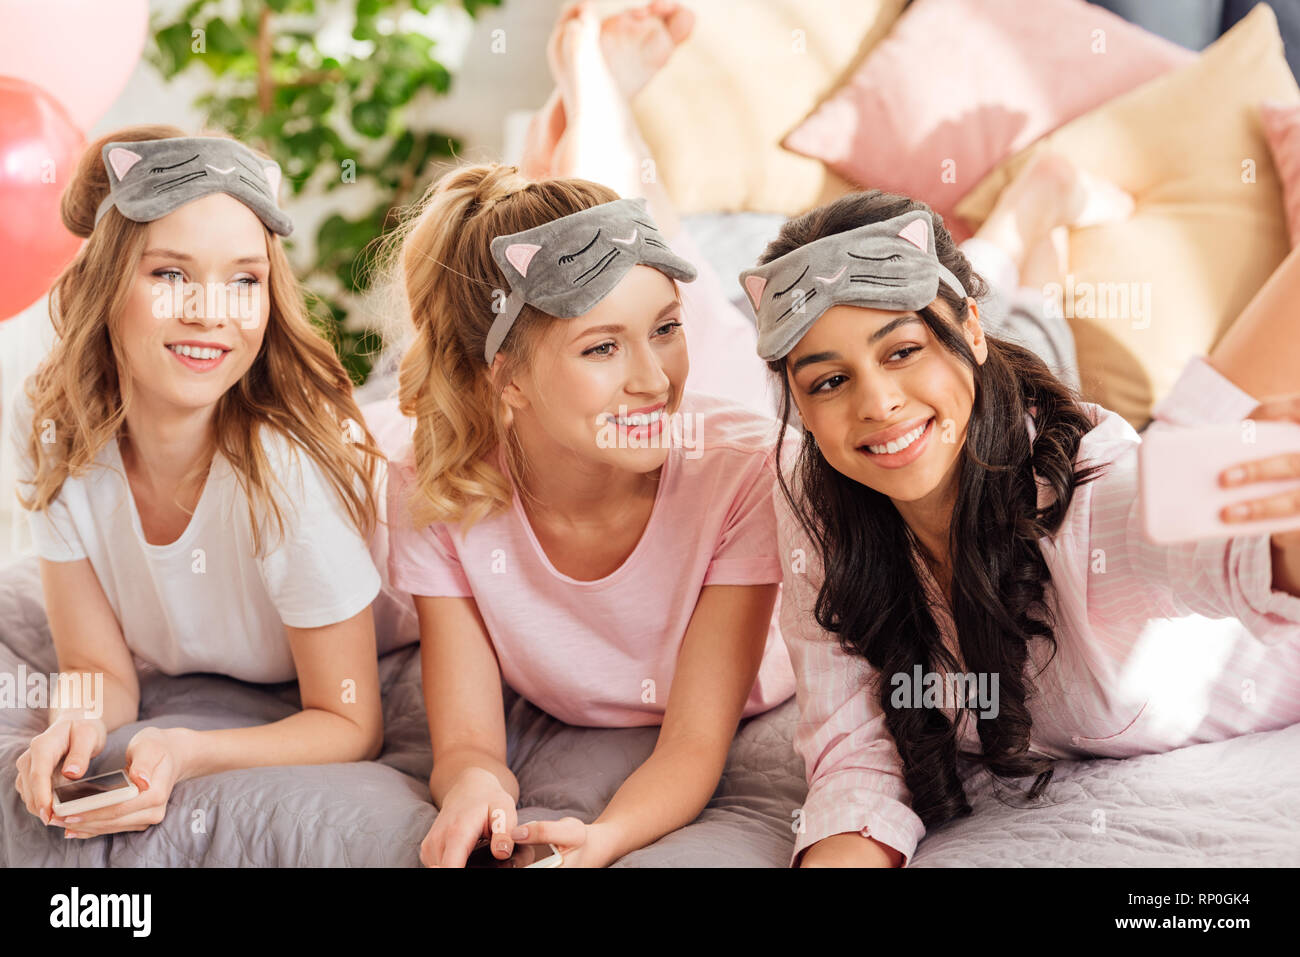 beautiful smiling multicultural girls in sleeping masks lying in bed and taking selfie on smartphone during pajama party - Stock Image